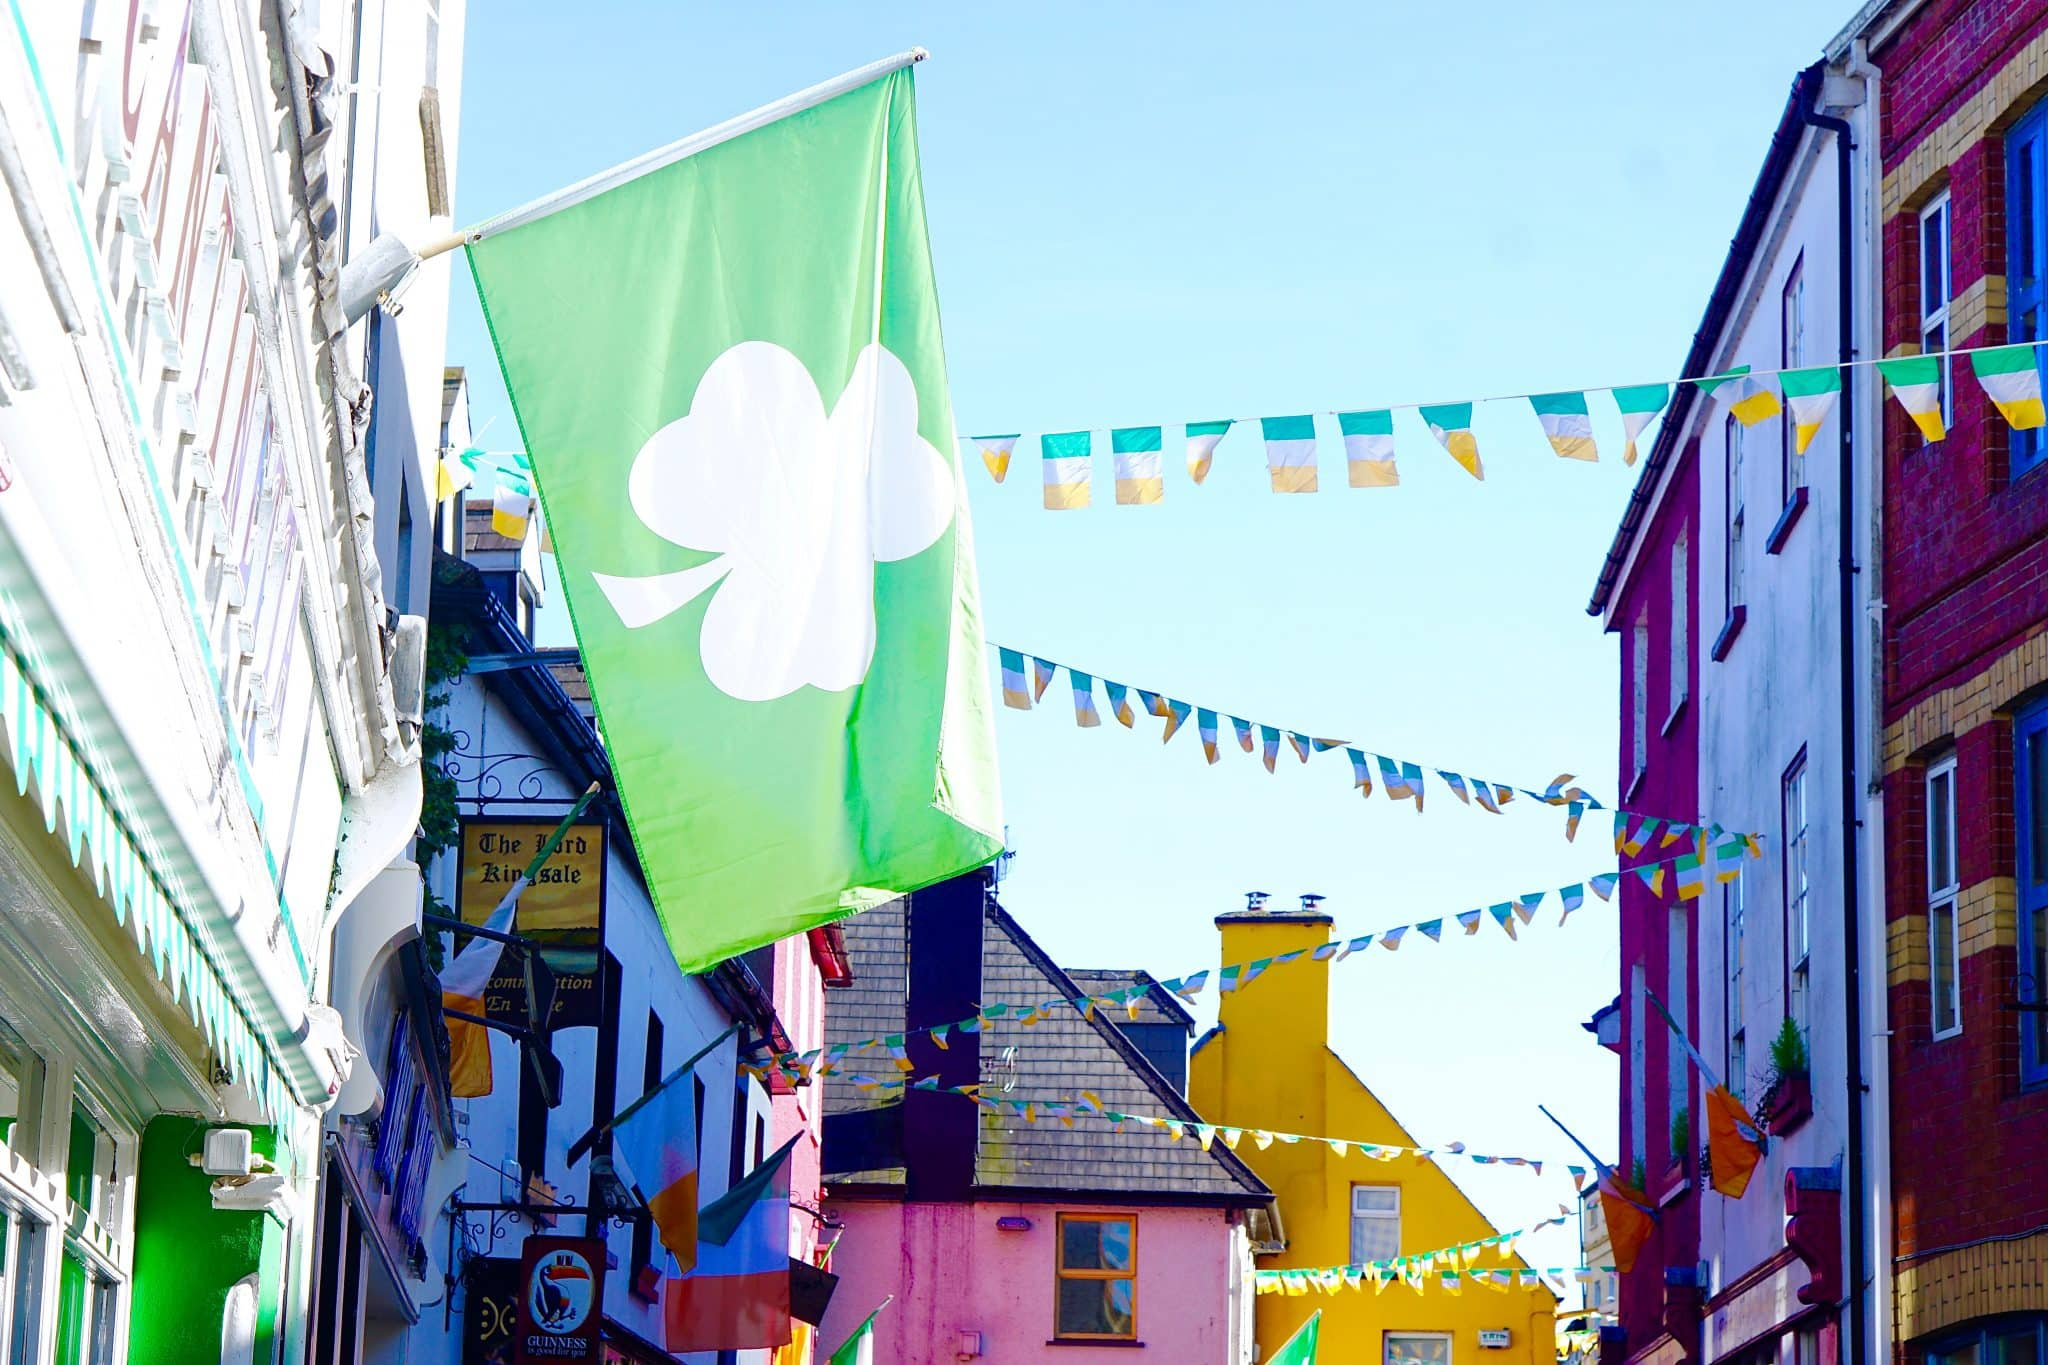 Colorful painted buildings in Kinsale Ireland, with Irish flags and a lucky clover green flag hanging. Kinsale is the start along the Ireland's Wild Atlantic Way.